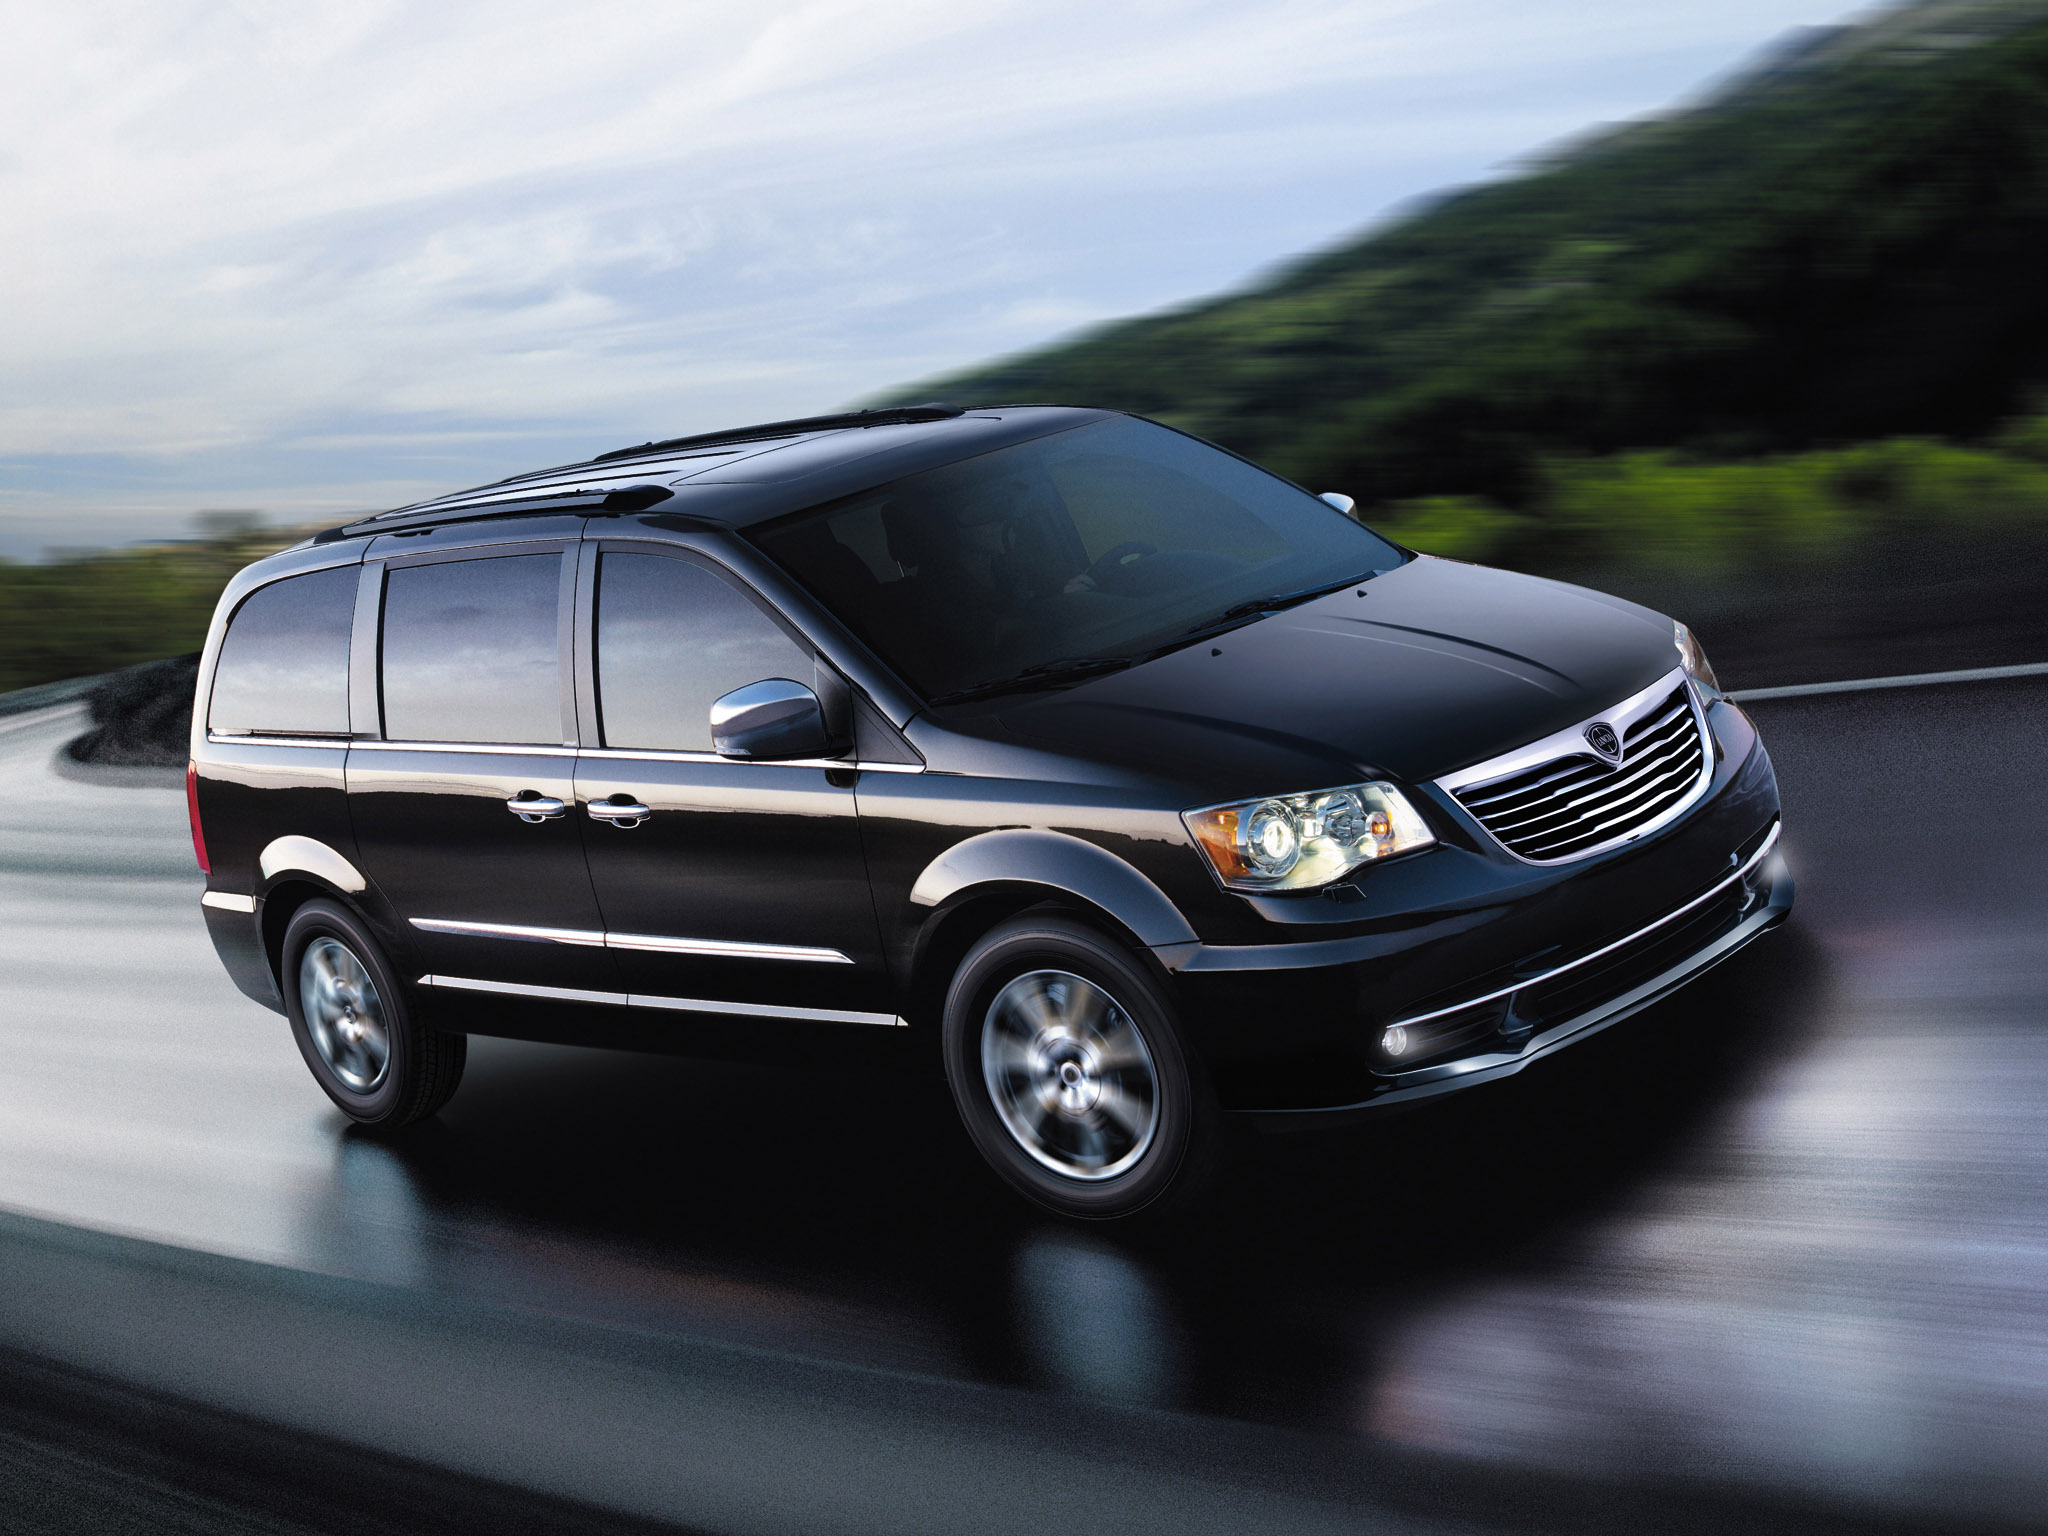 lancia grand voyager 2011 lancia grand voyager 2011 photo 28 car in pictures car photo gallery. Black Bedroom Furniture Sets. Home Design Ideas